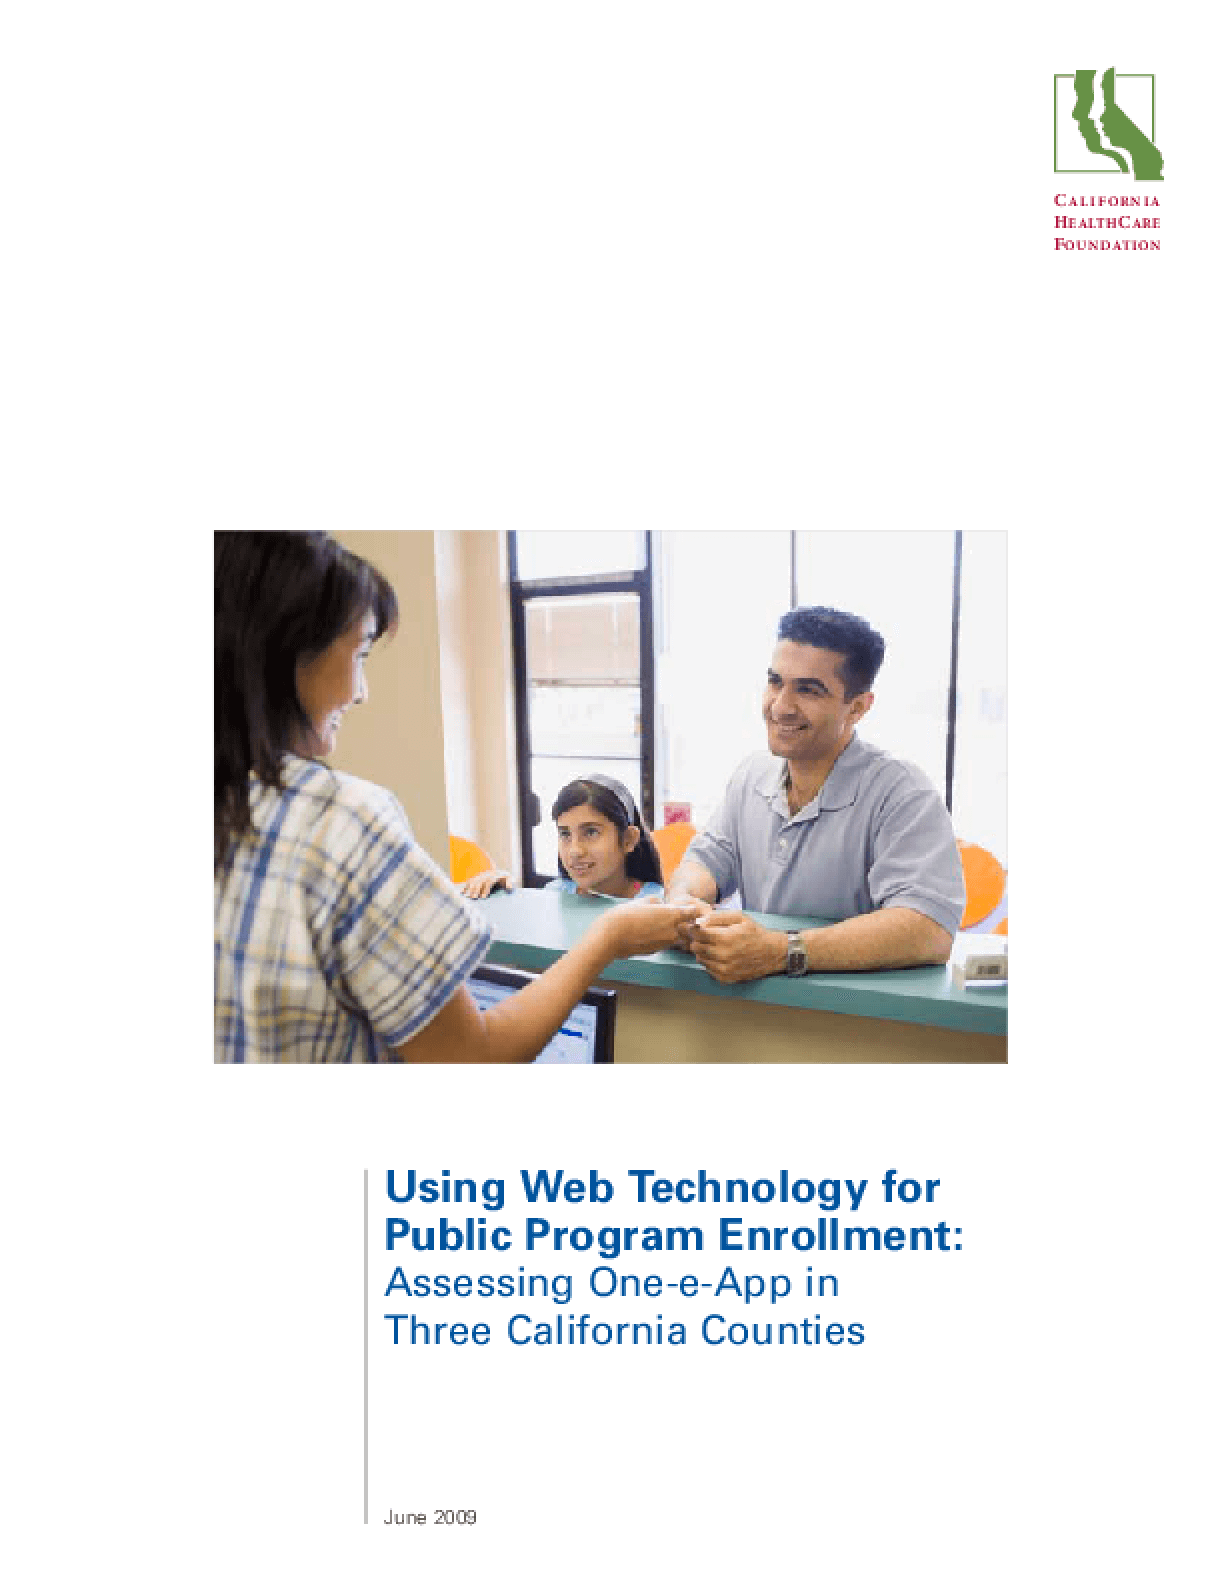 Using Web Technology for Public Program Enrollment: Assessing One-e-App in Three California Counties